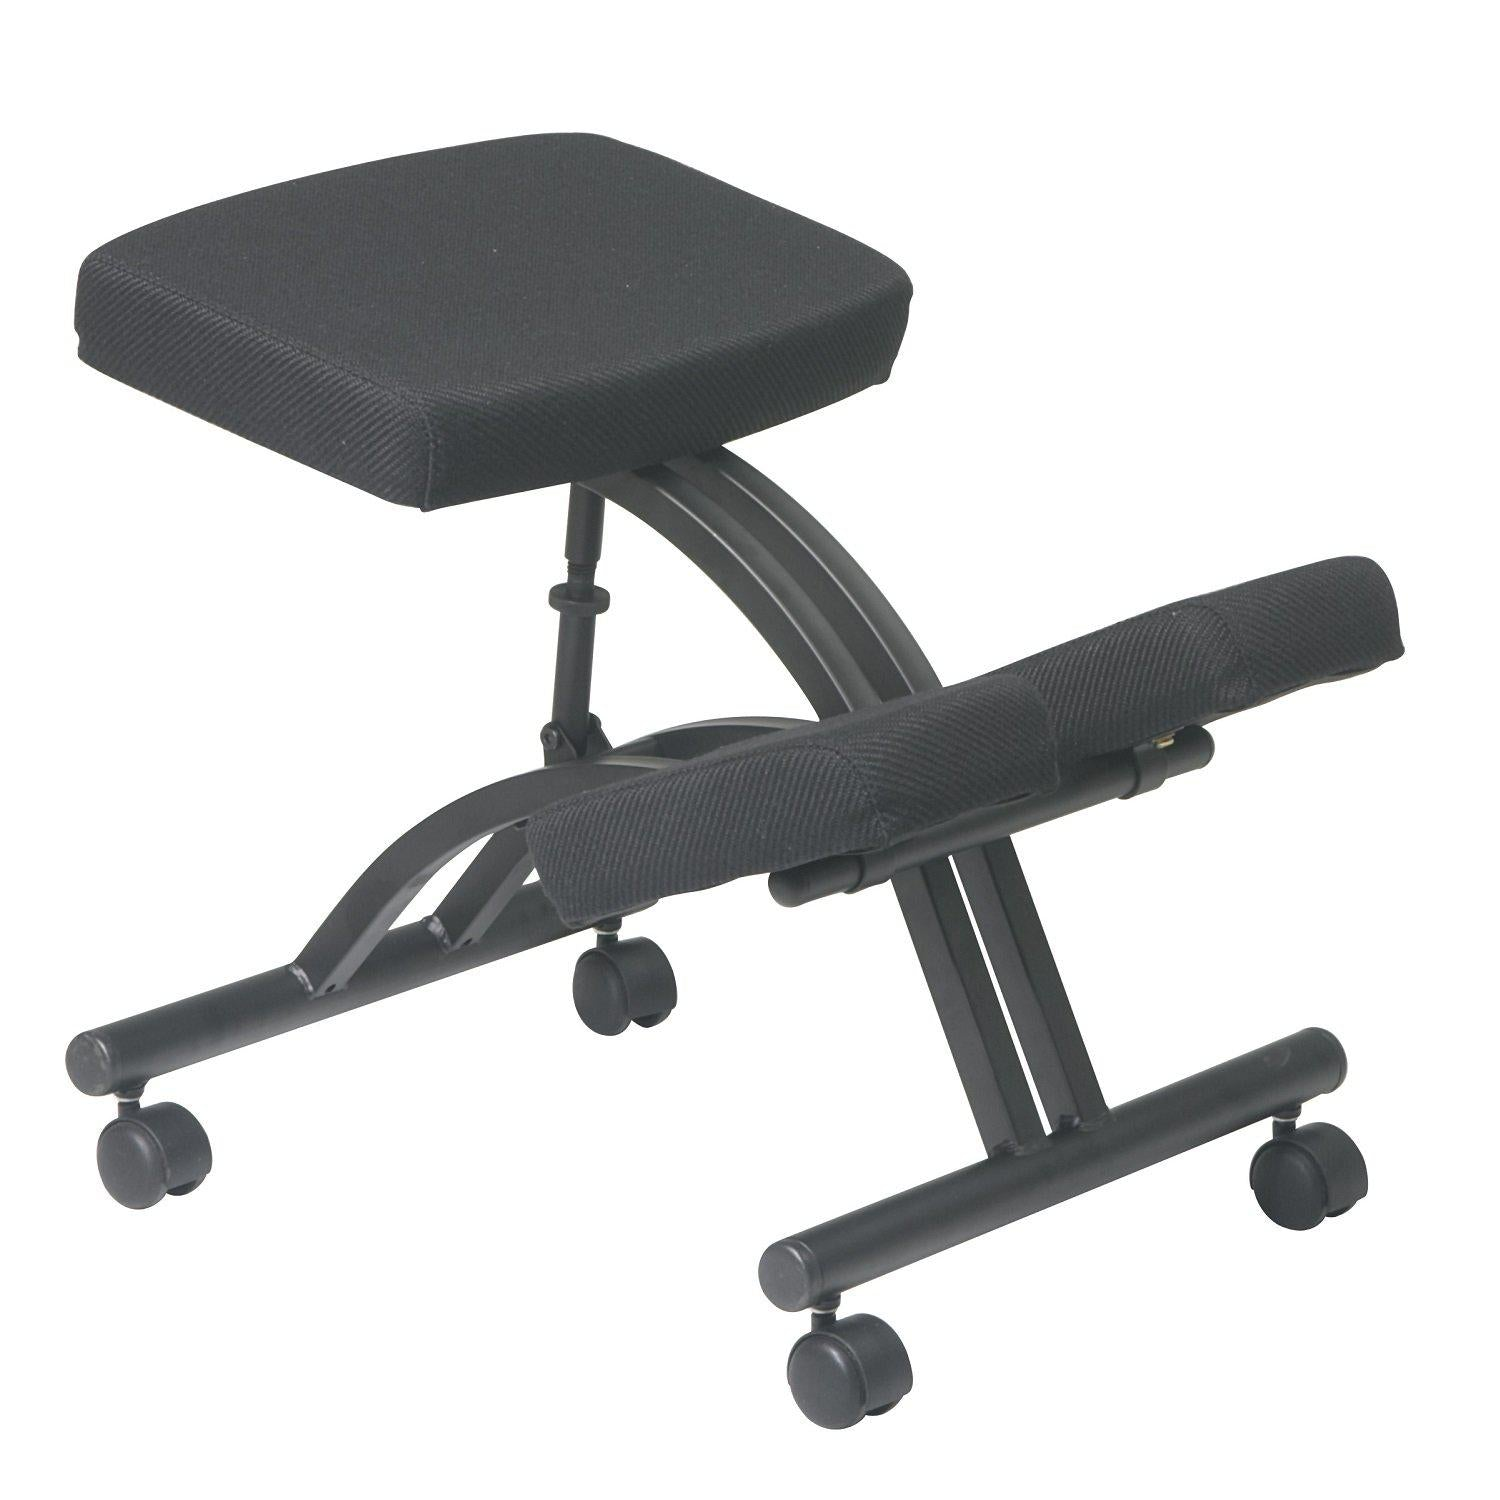 Ergonomically Designed Knee Chair with Casters and Memory Foam